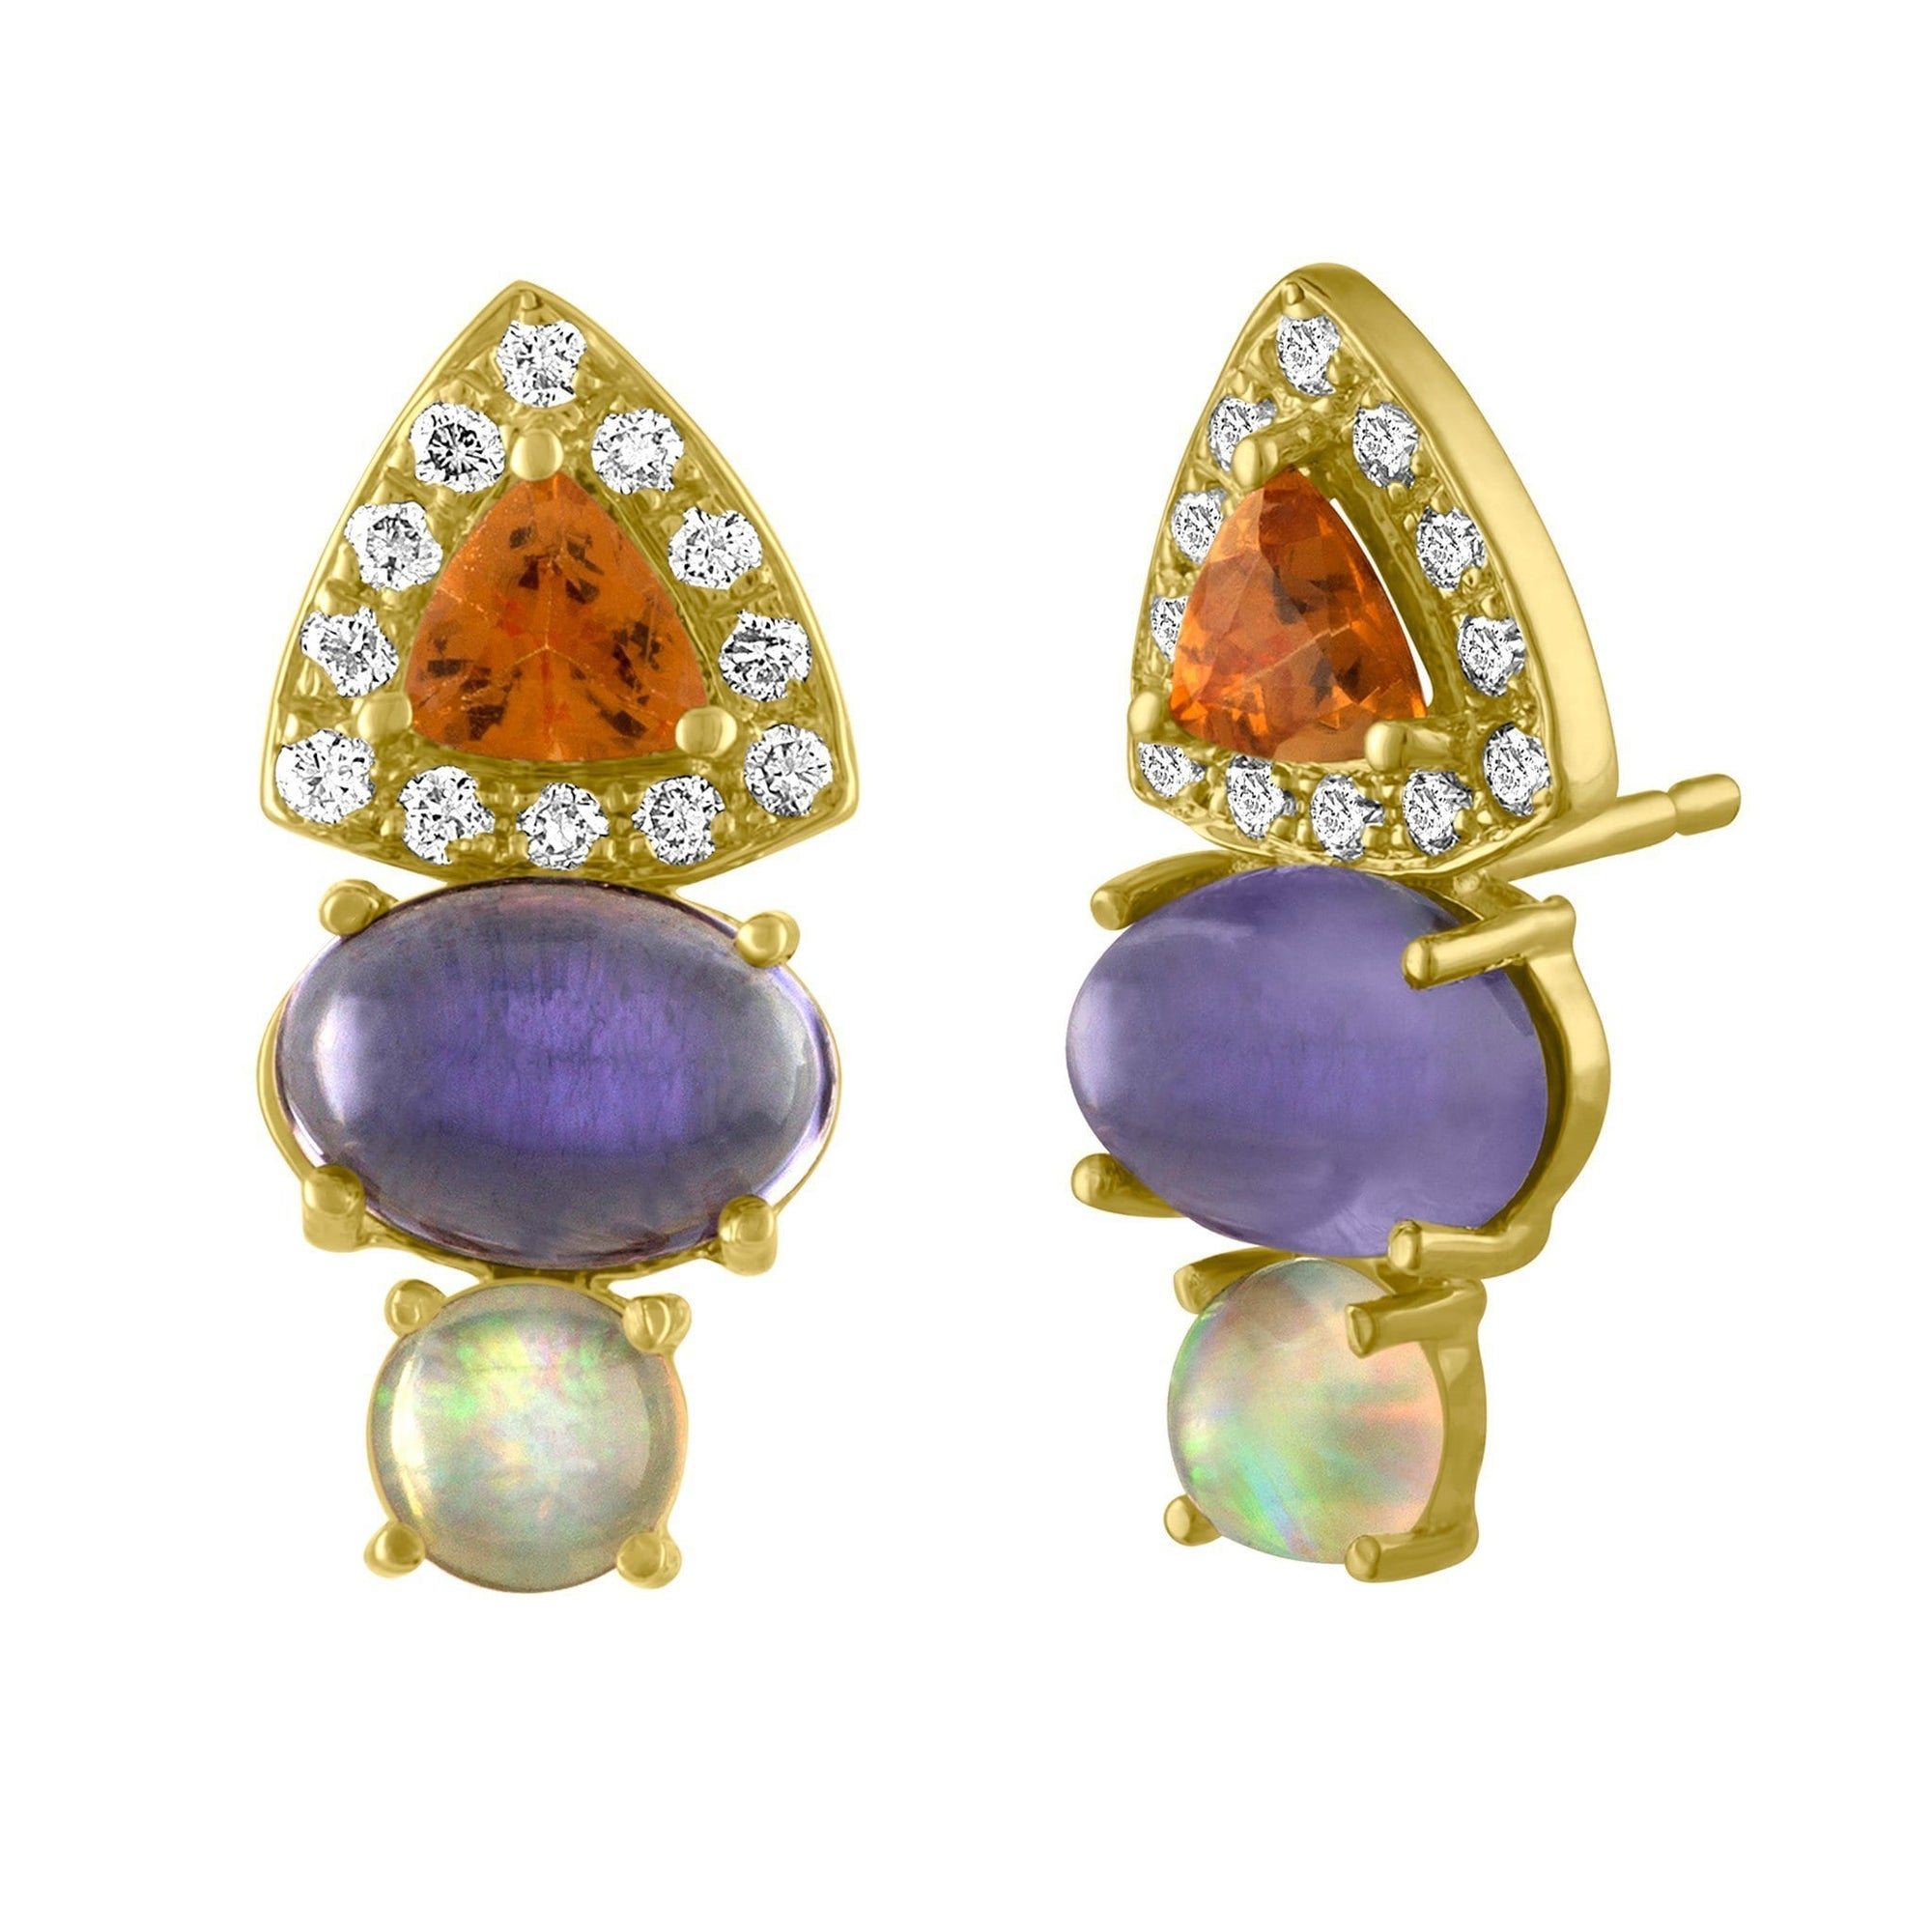 Linea Stud Earrings: 14k Gold, Spessartite Trillions, Tanzanite, Opal